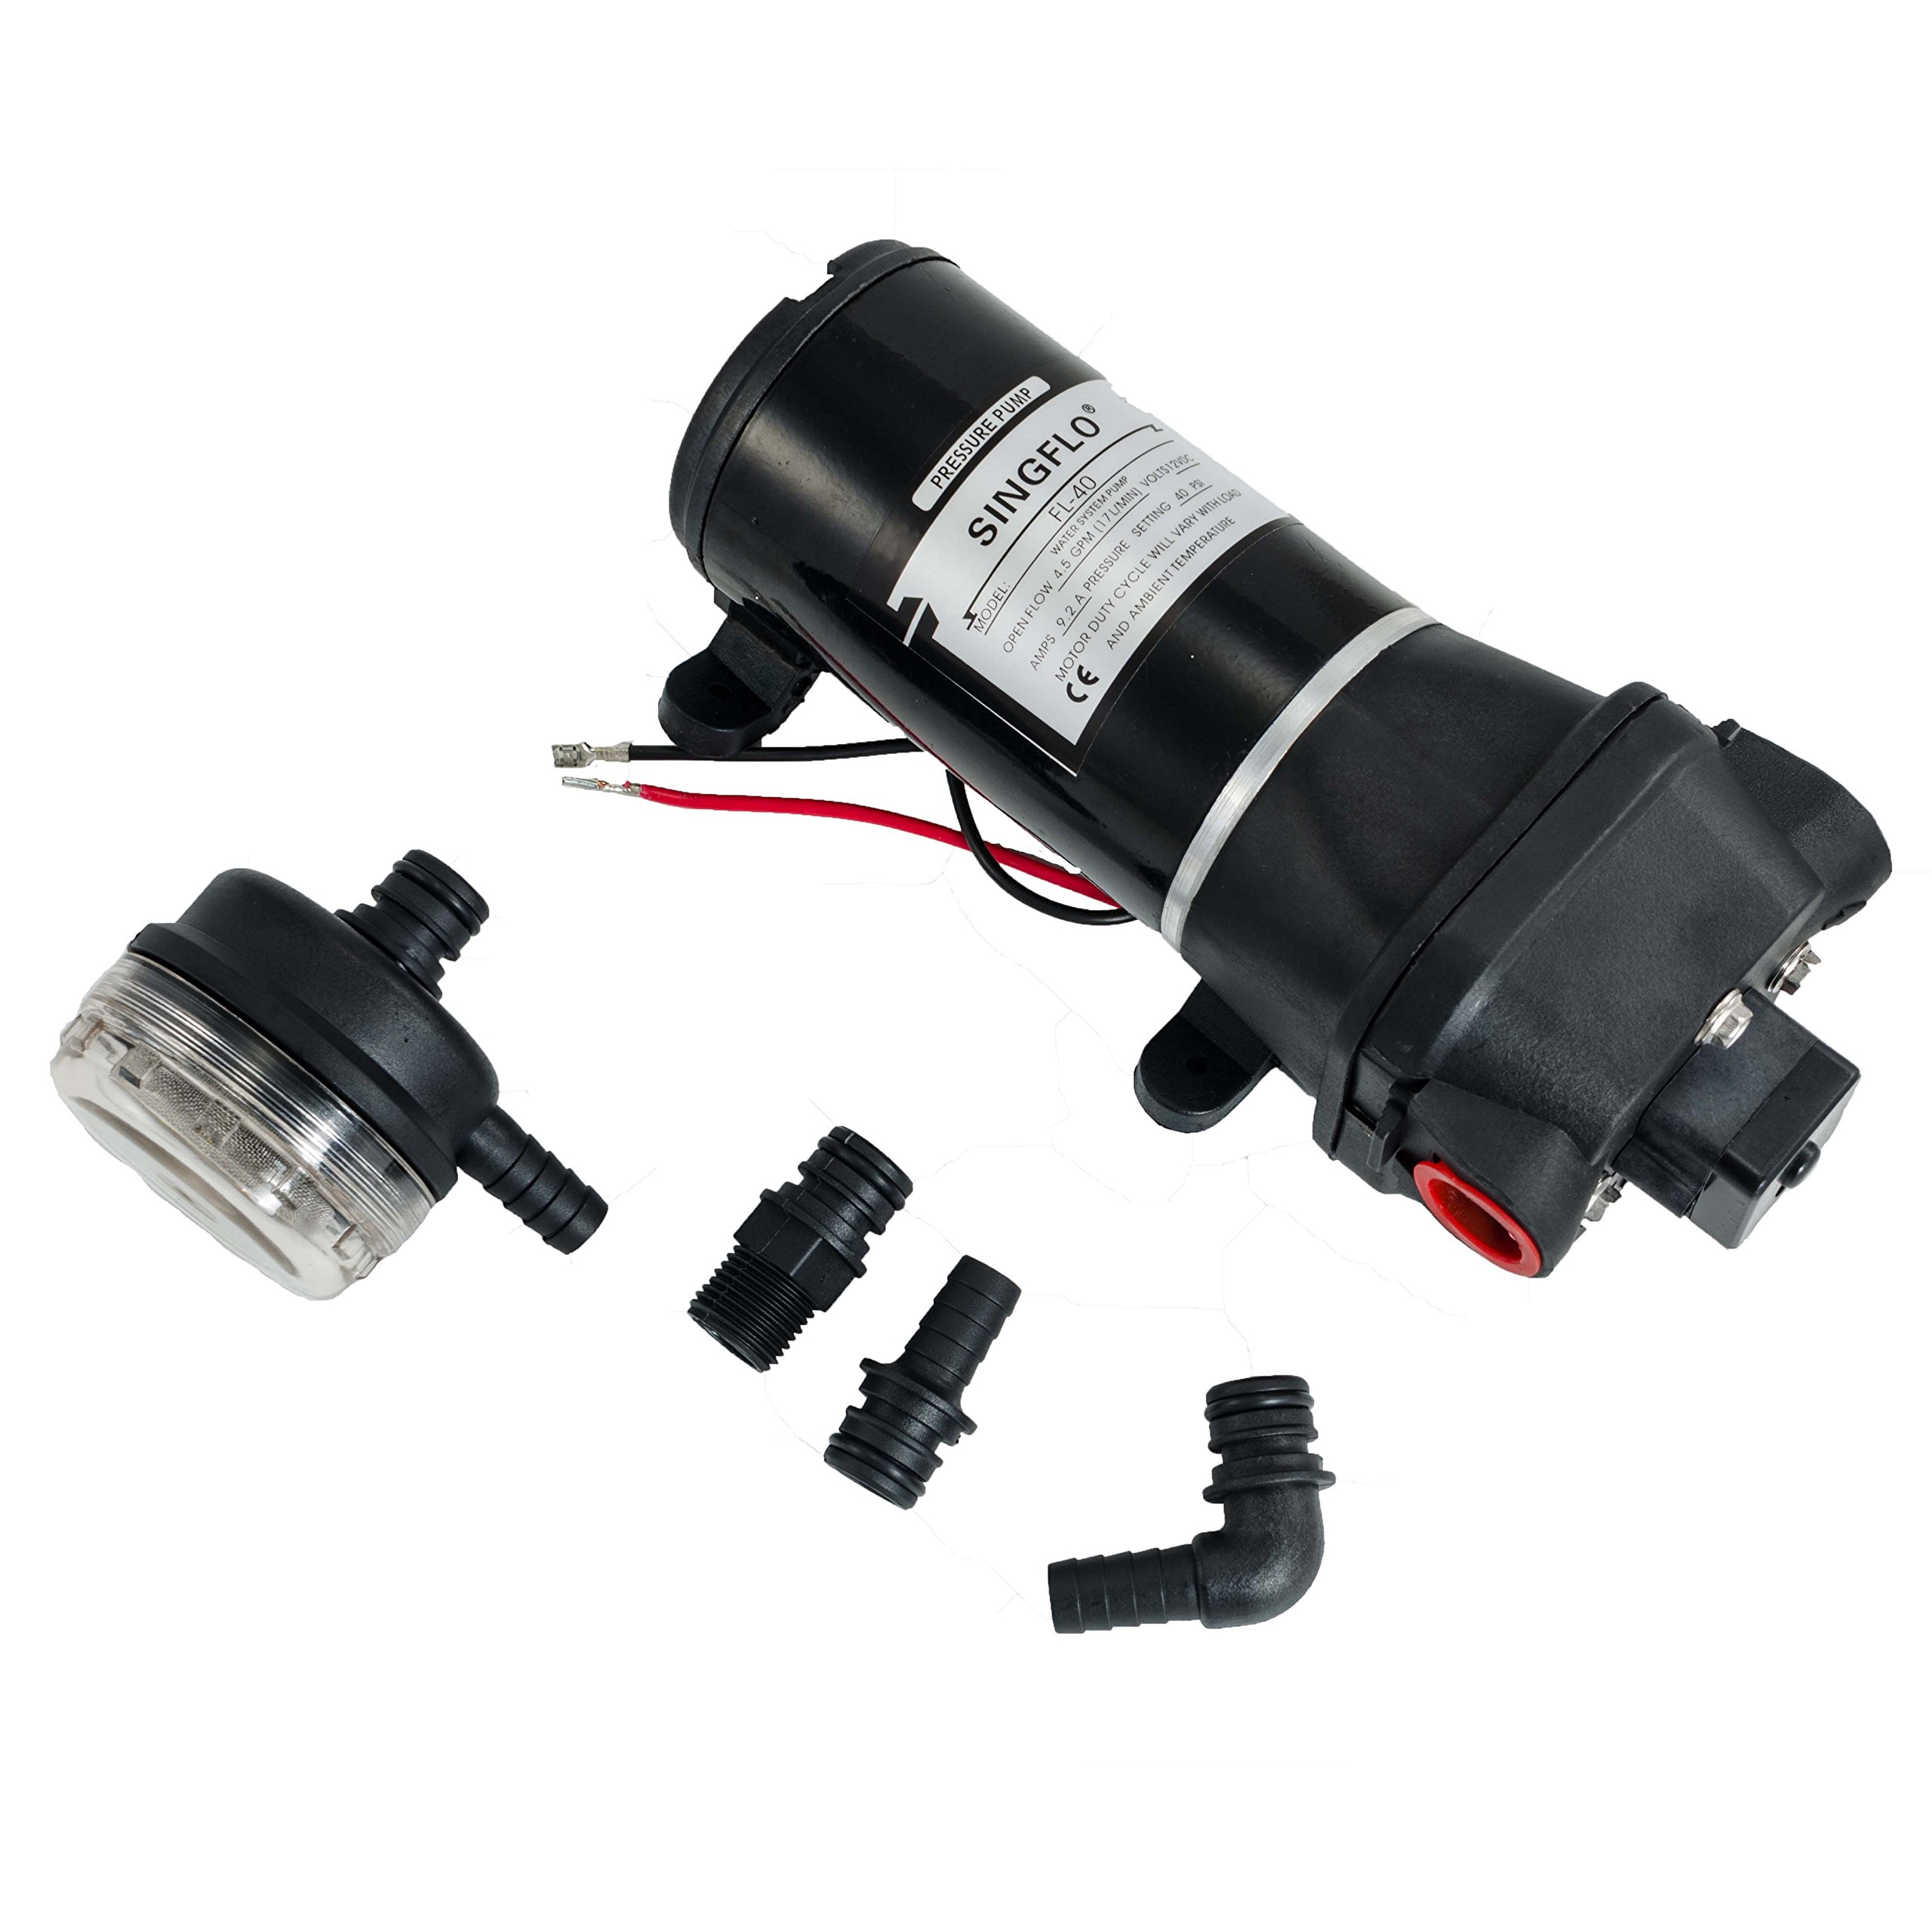 Hex Autoparts High Pressure Water Pump 12V DC 40PSI 4.5GPM Fittings Replace Flojet Caravan RV Boat Marine